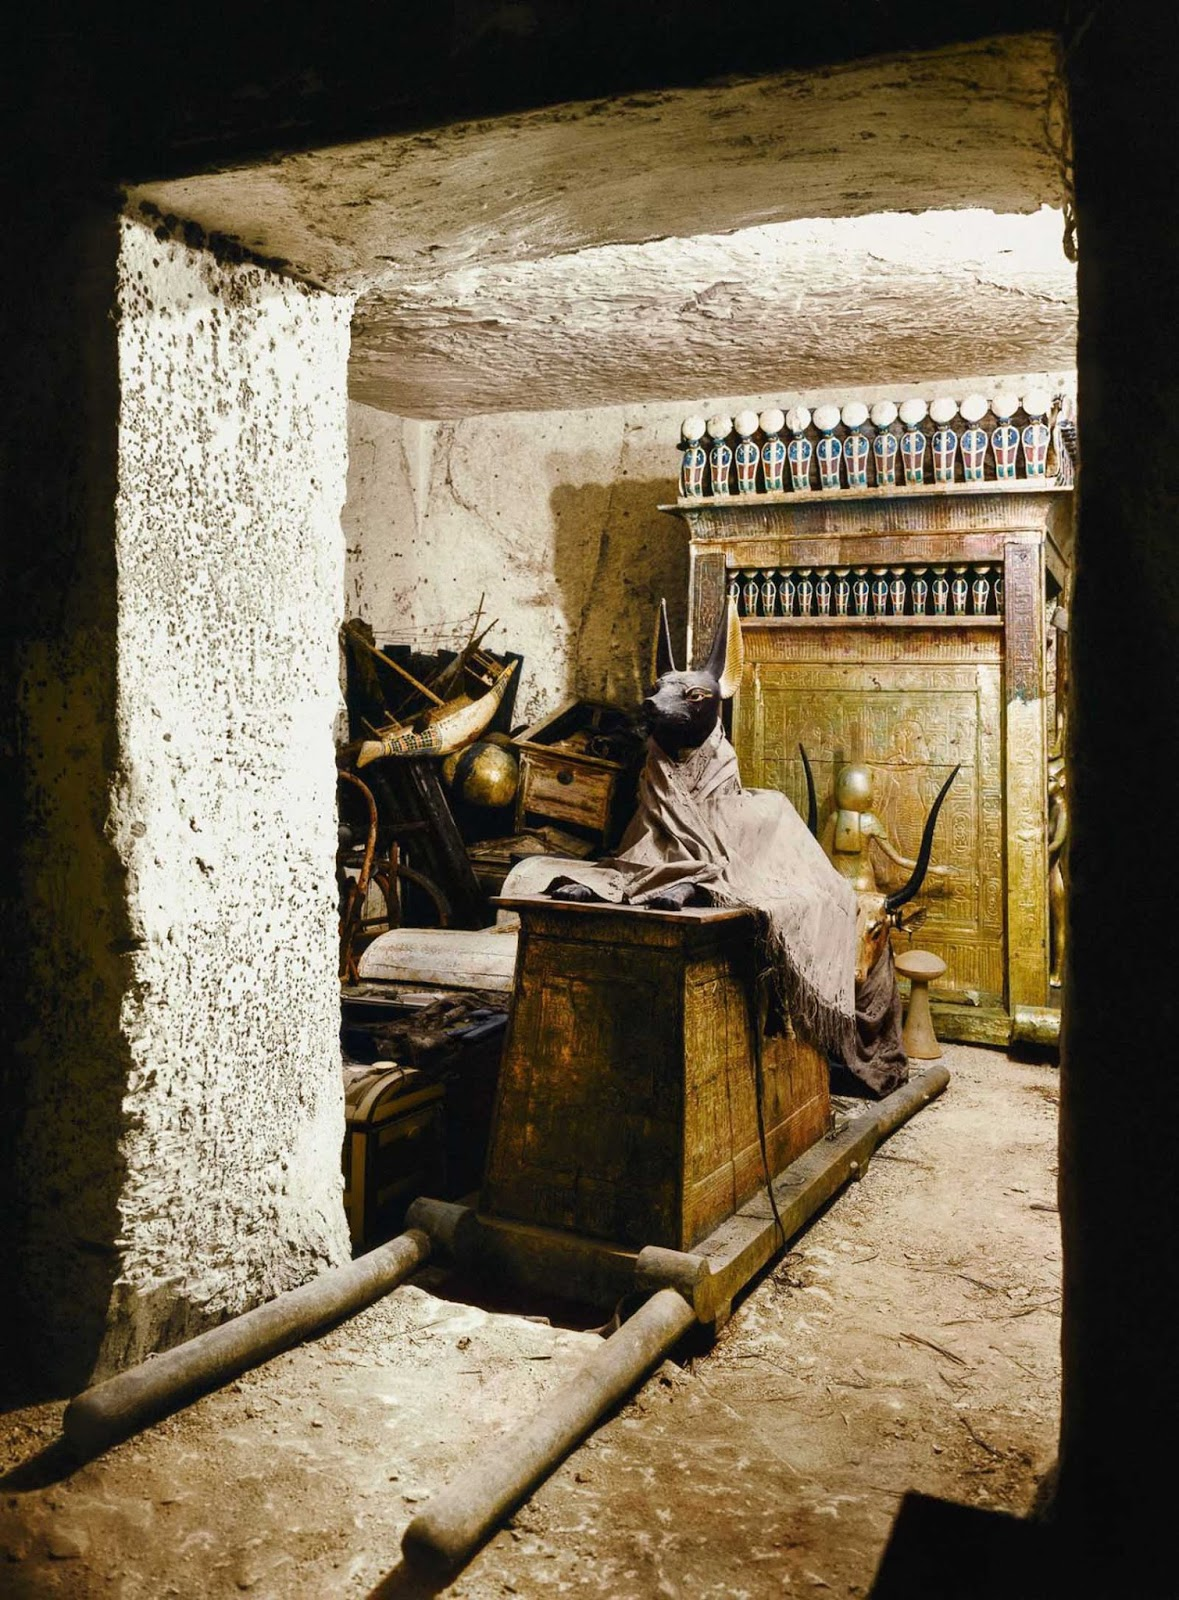 A statue of Anubis on a shrine with pallbearers' poles in the treasury of the tomb.